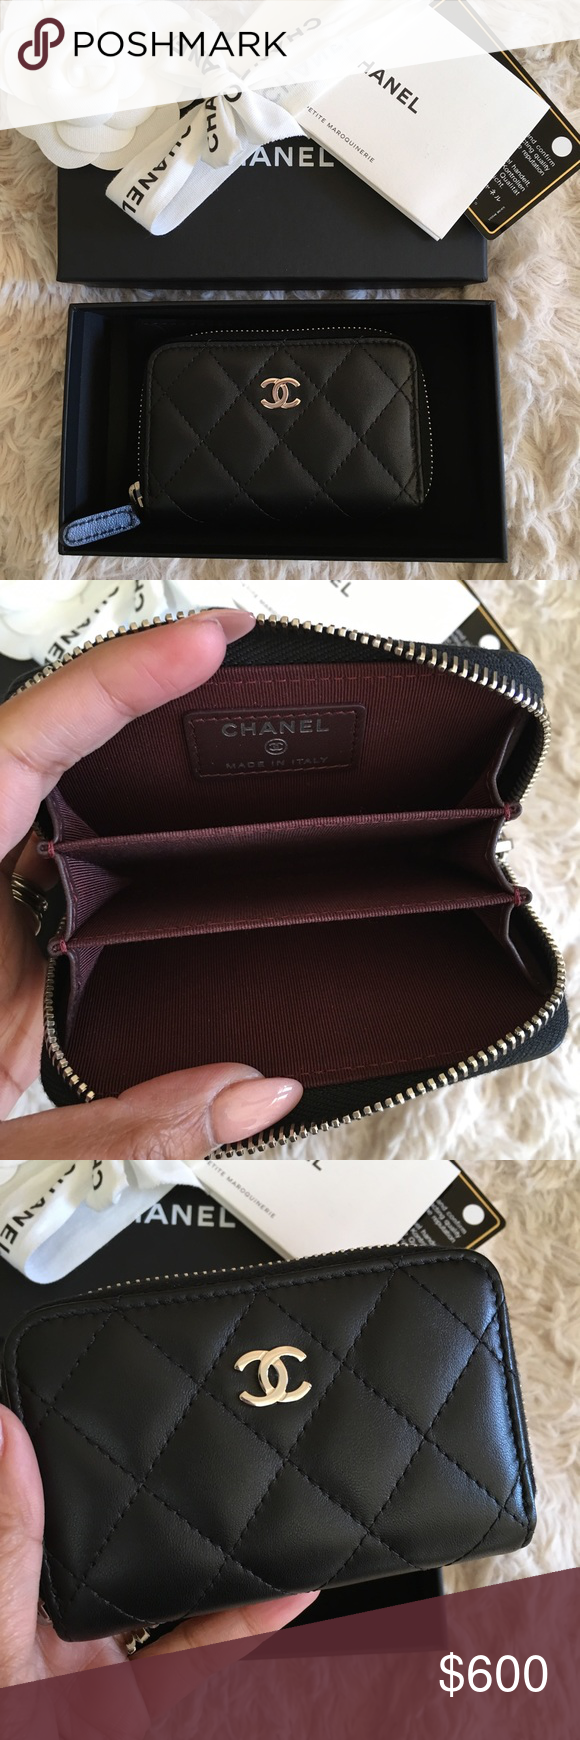 chanel key pouch. black lambskin with silver hardwareseries can have it authenticated upon buyer\u0027s request./no trades chanel accessories key \u0026 card holders chanel pouch o